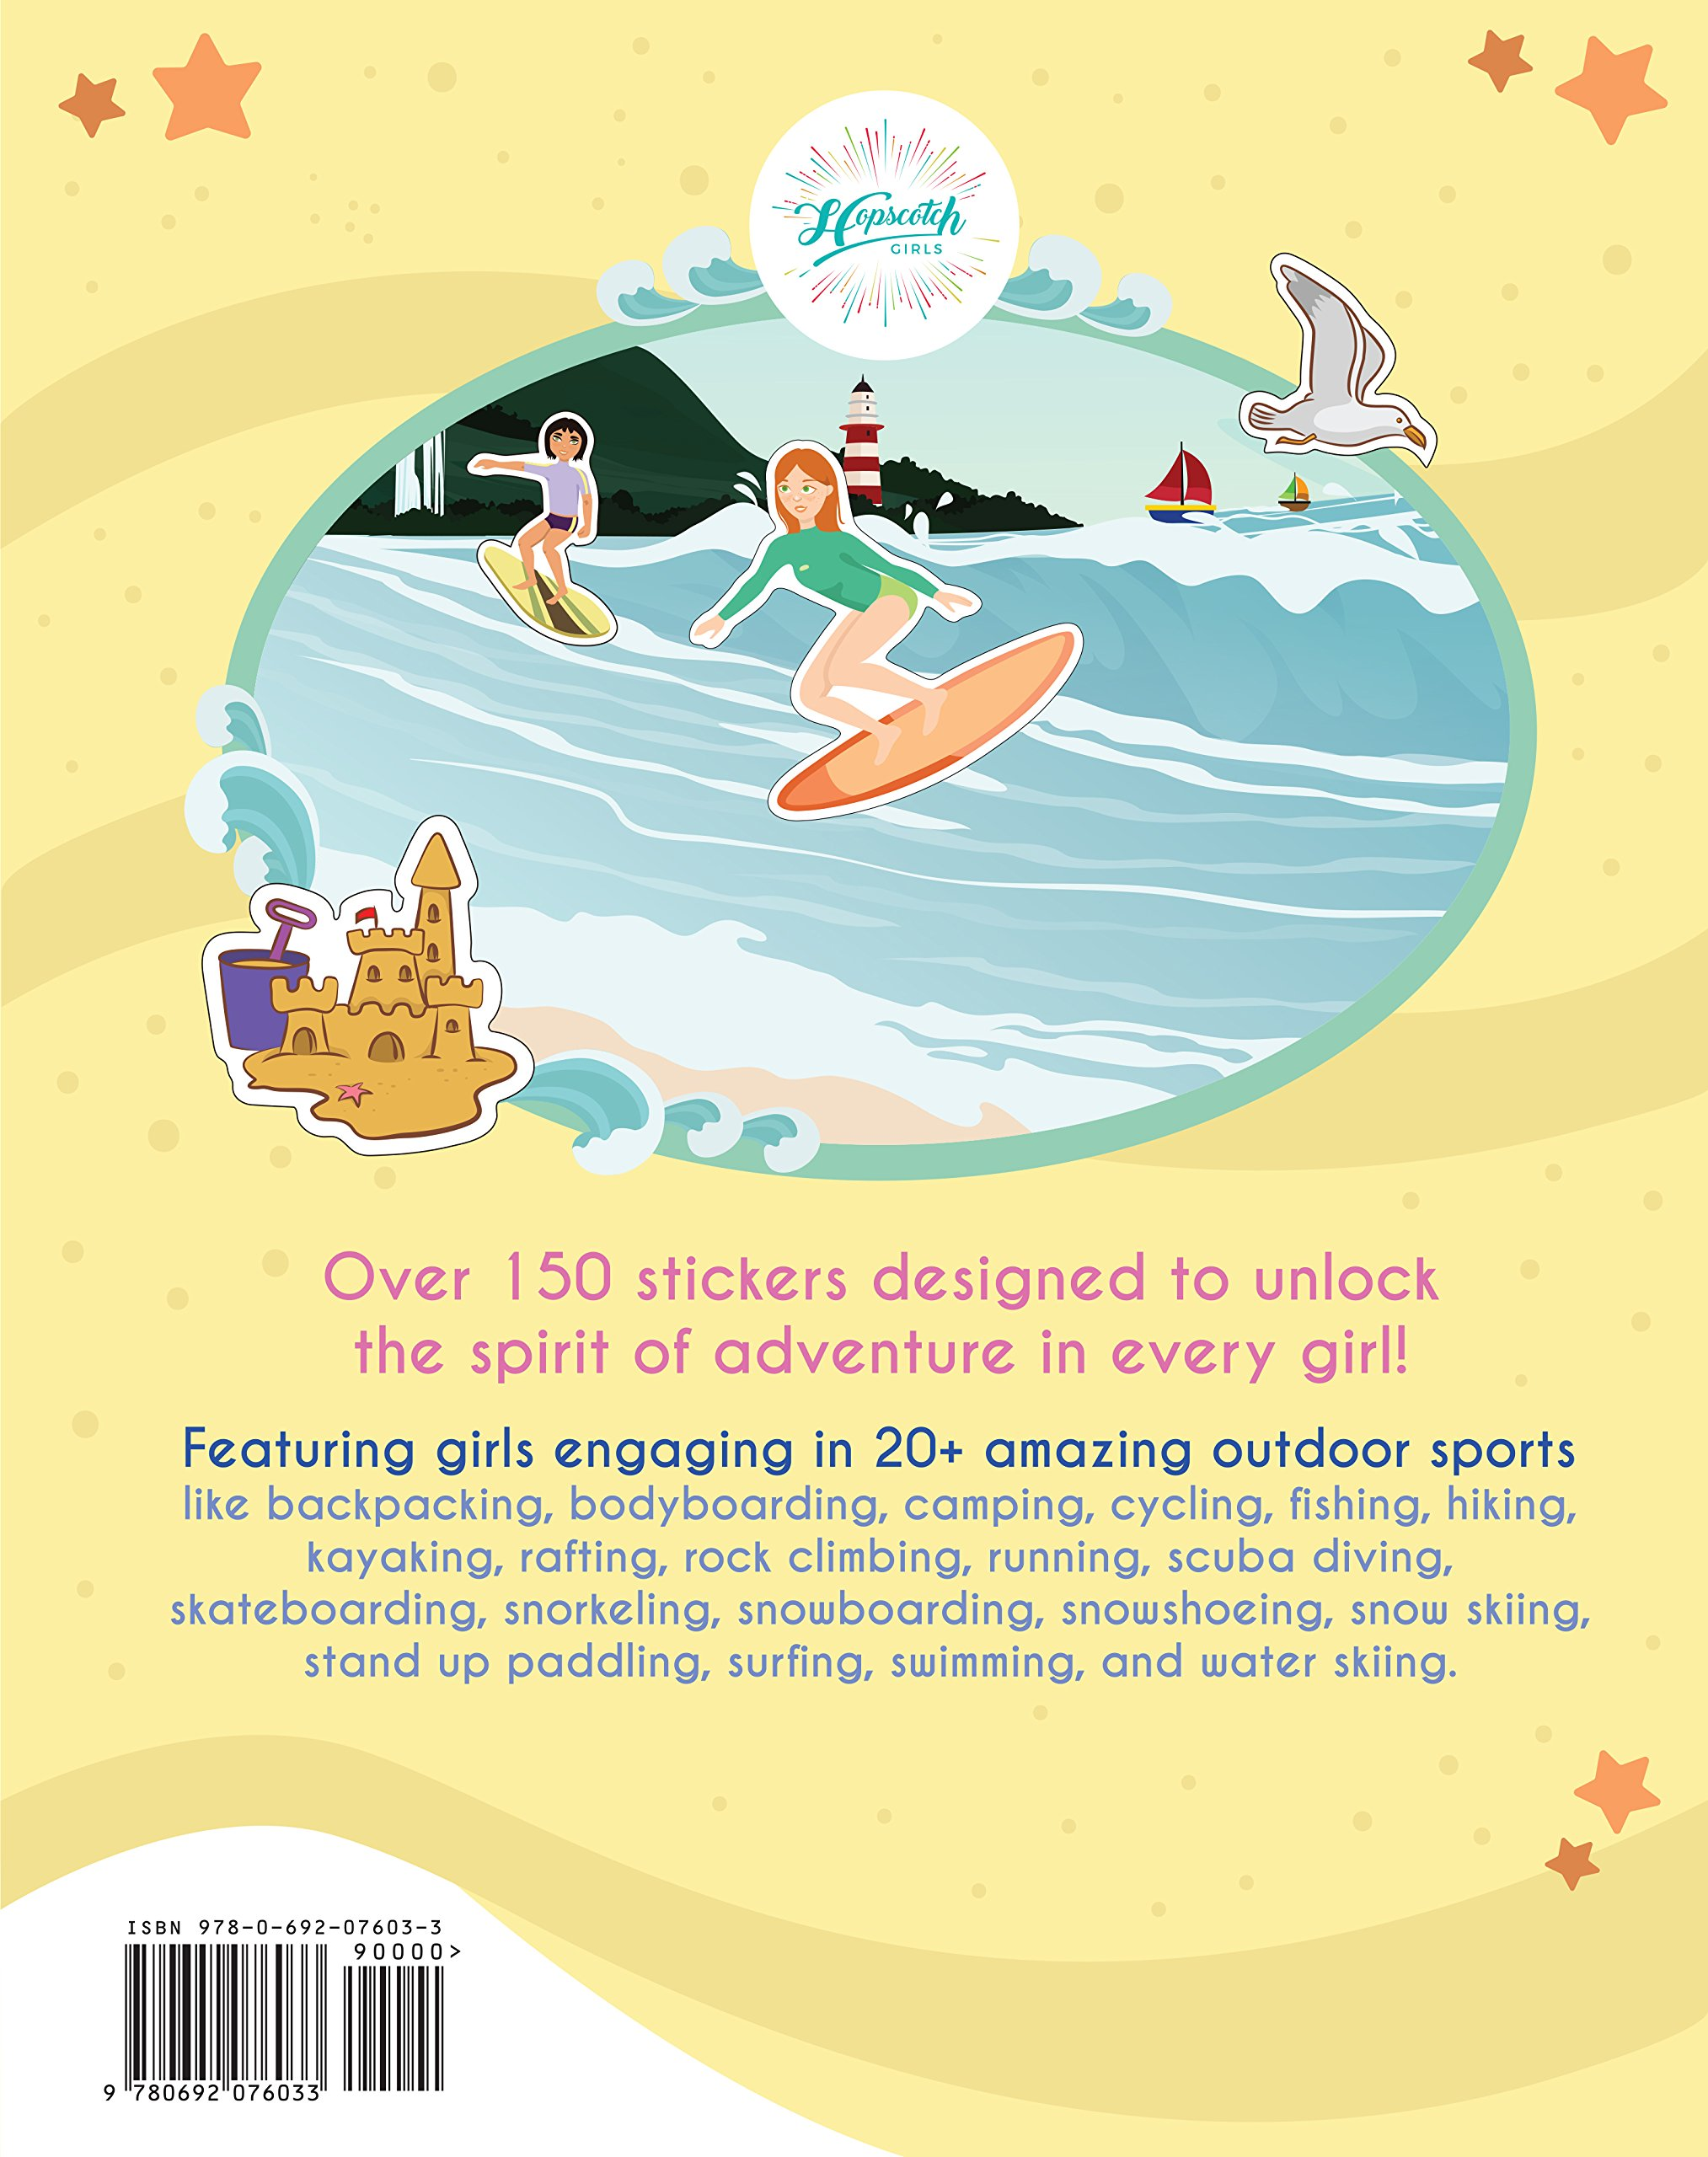 Confidence-Building Sticker Book for Girls Ages 4-8 - Outdoor Sports Sticker Adventure by Hopscotch Girls (Image #2)